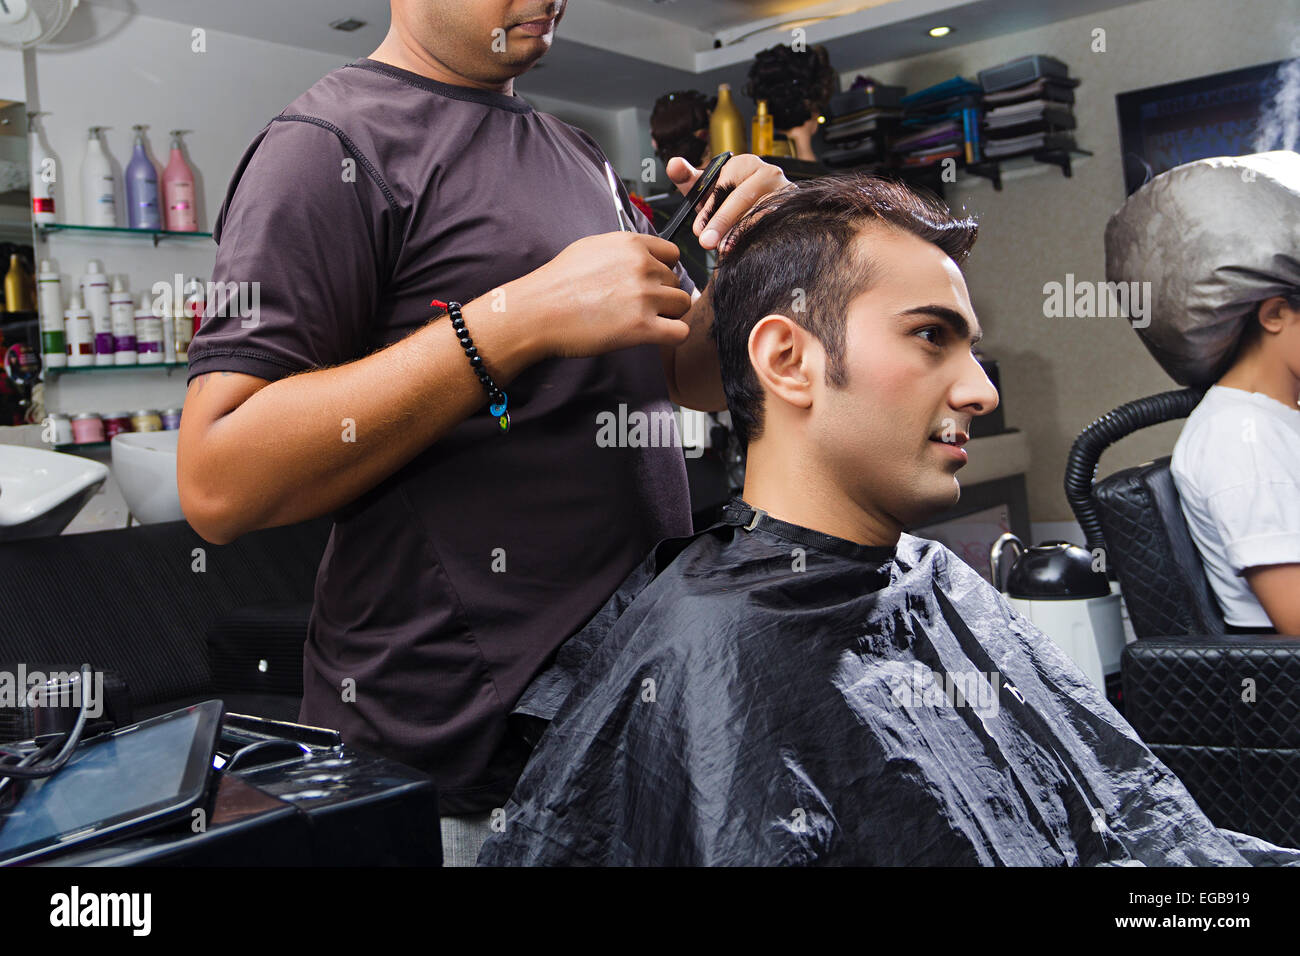 12 indian people Hairdresser Cutting Saloon Stock Photo - Alamy